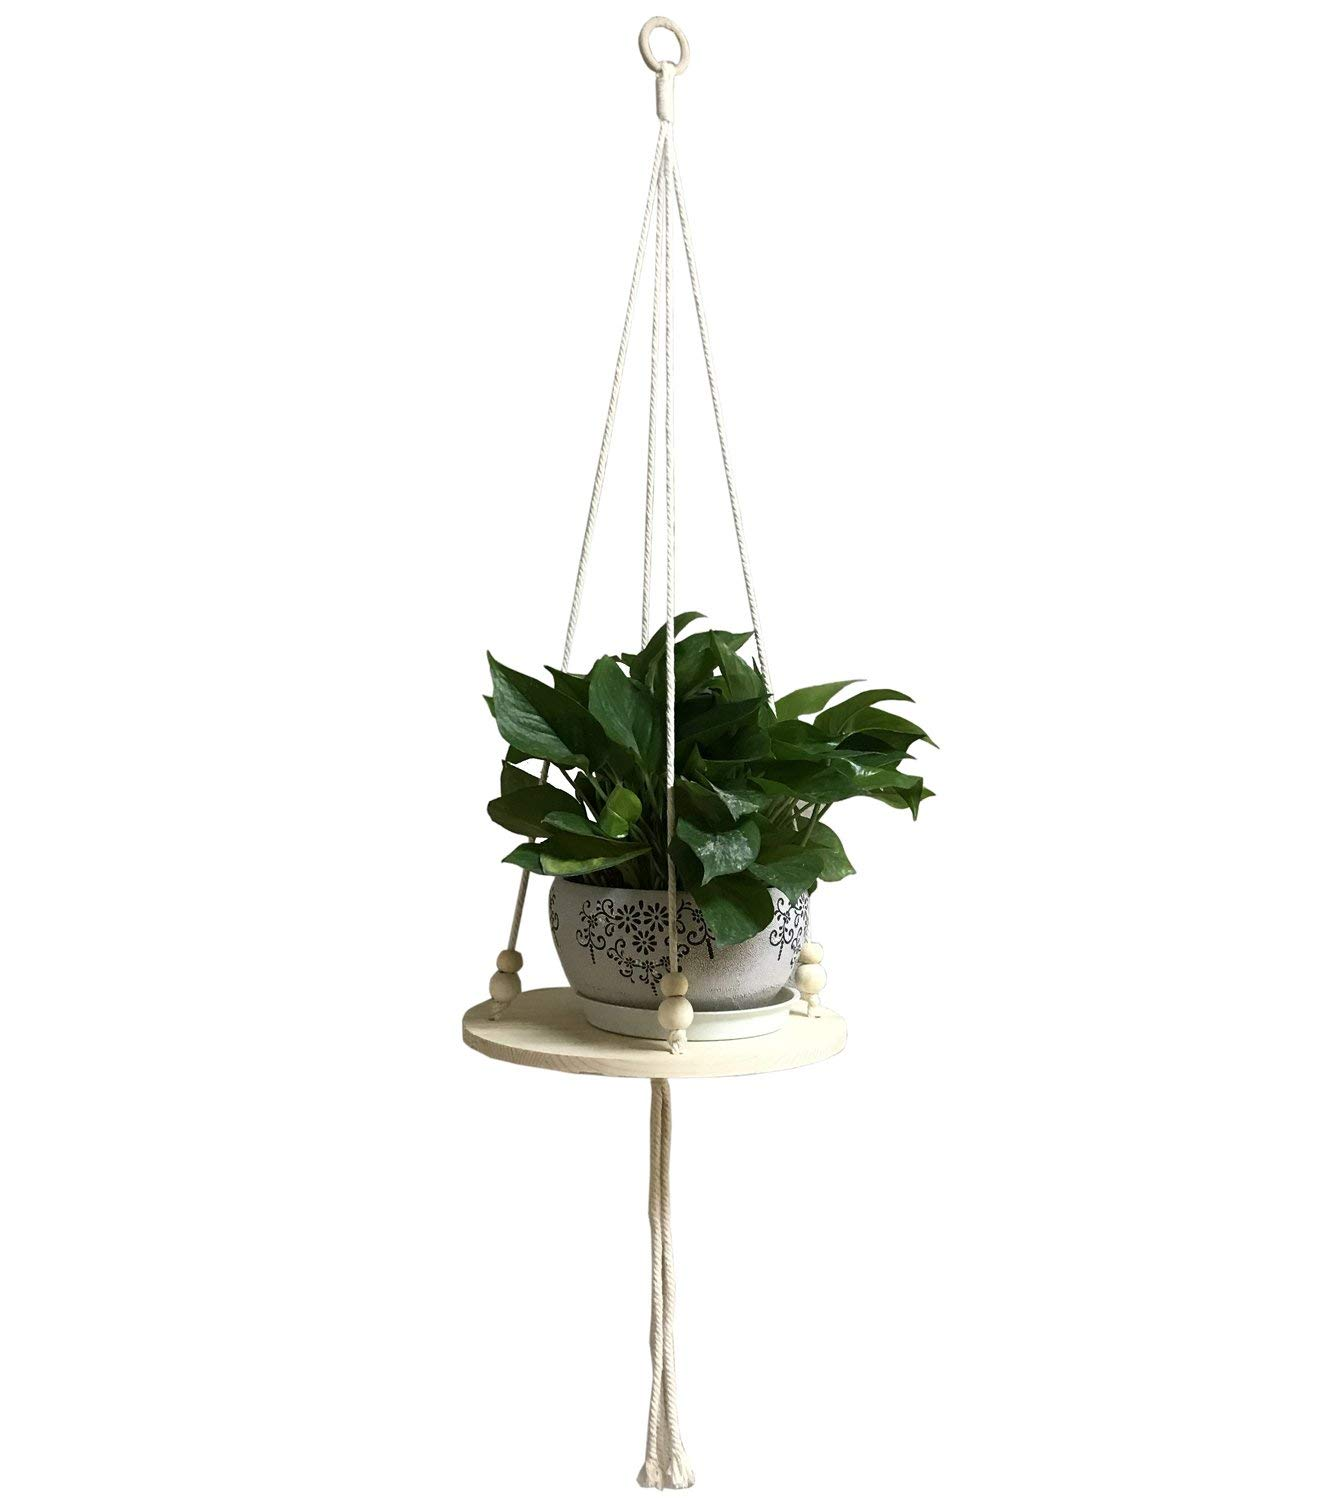 Decor Trends Wall Hanging Plant Shelf Macrame Display Wall Hanging Shelf Flower Pot Holder Succulent Plants Hanger with Wooden Plant Stand for Balcony Patio Ceiling 45'' Length